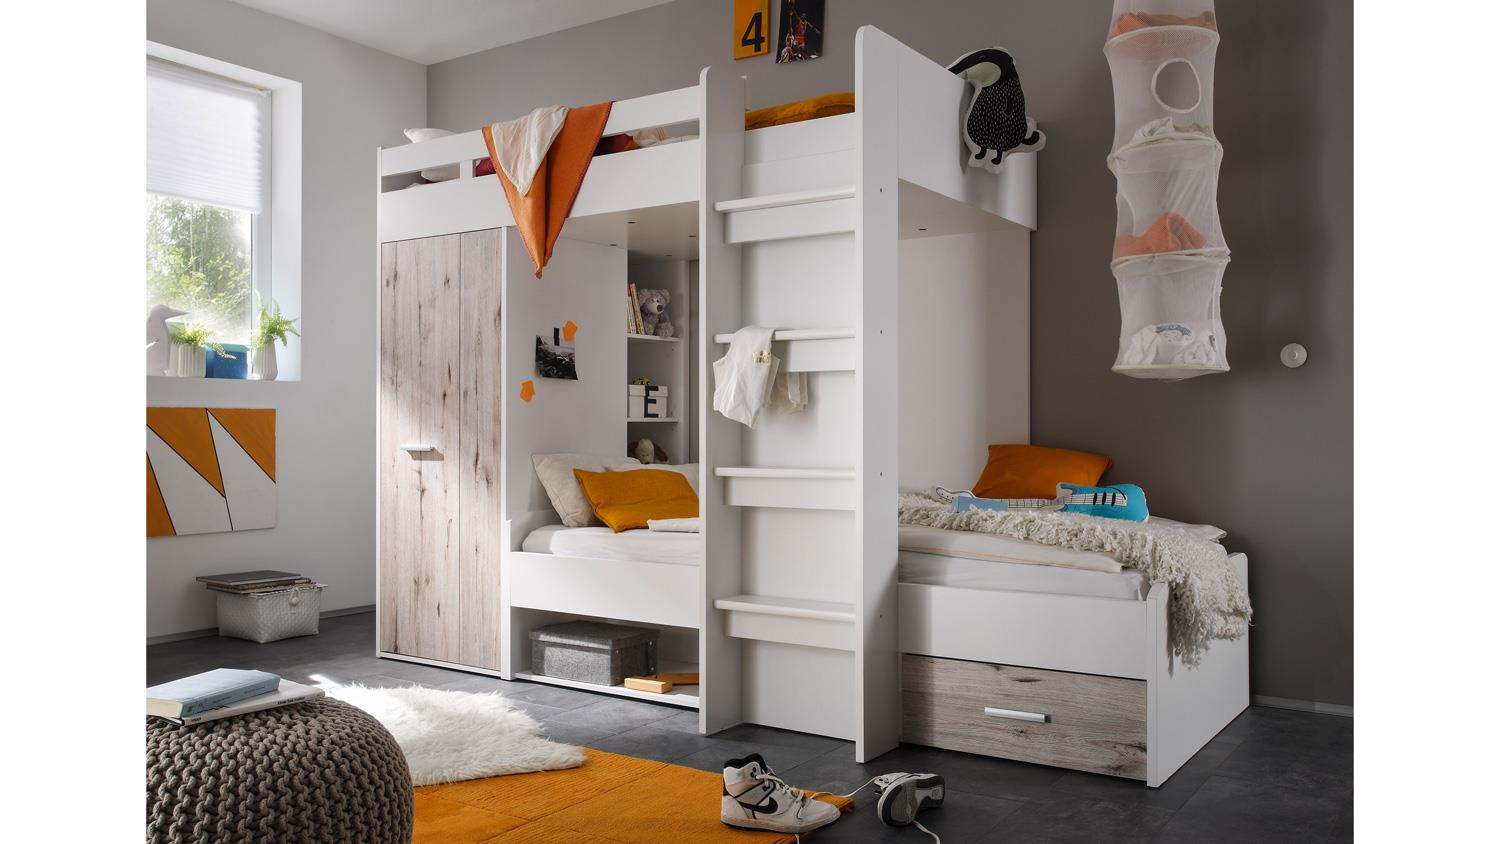 etagenbett maxi kinderbett hochbett bett wei und. Black Bedroom Furniture Sets. Home Design Ideas